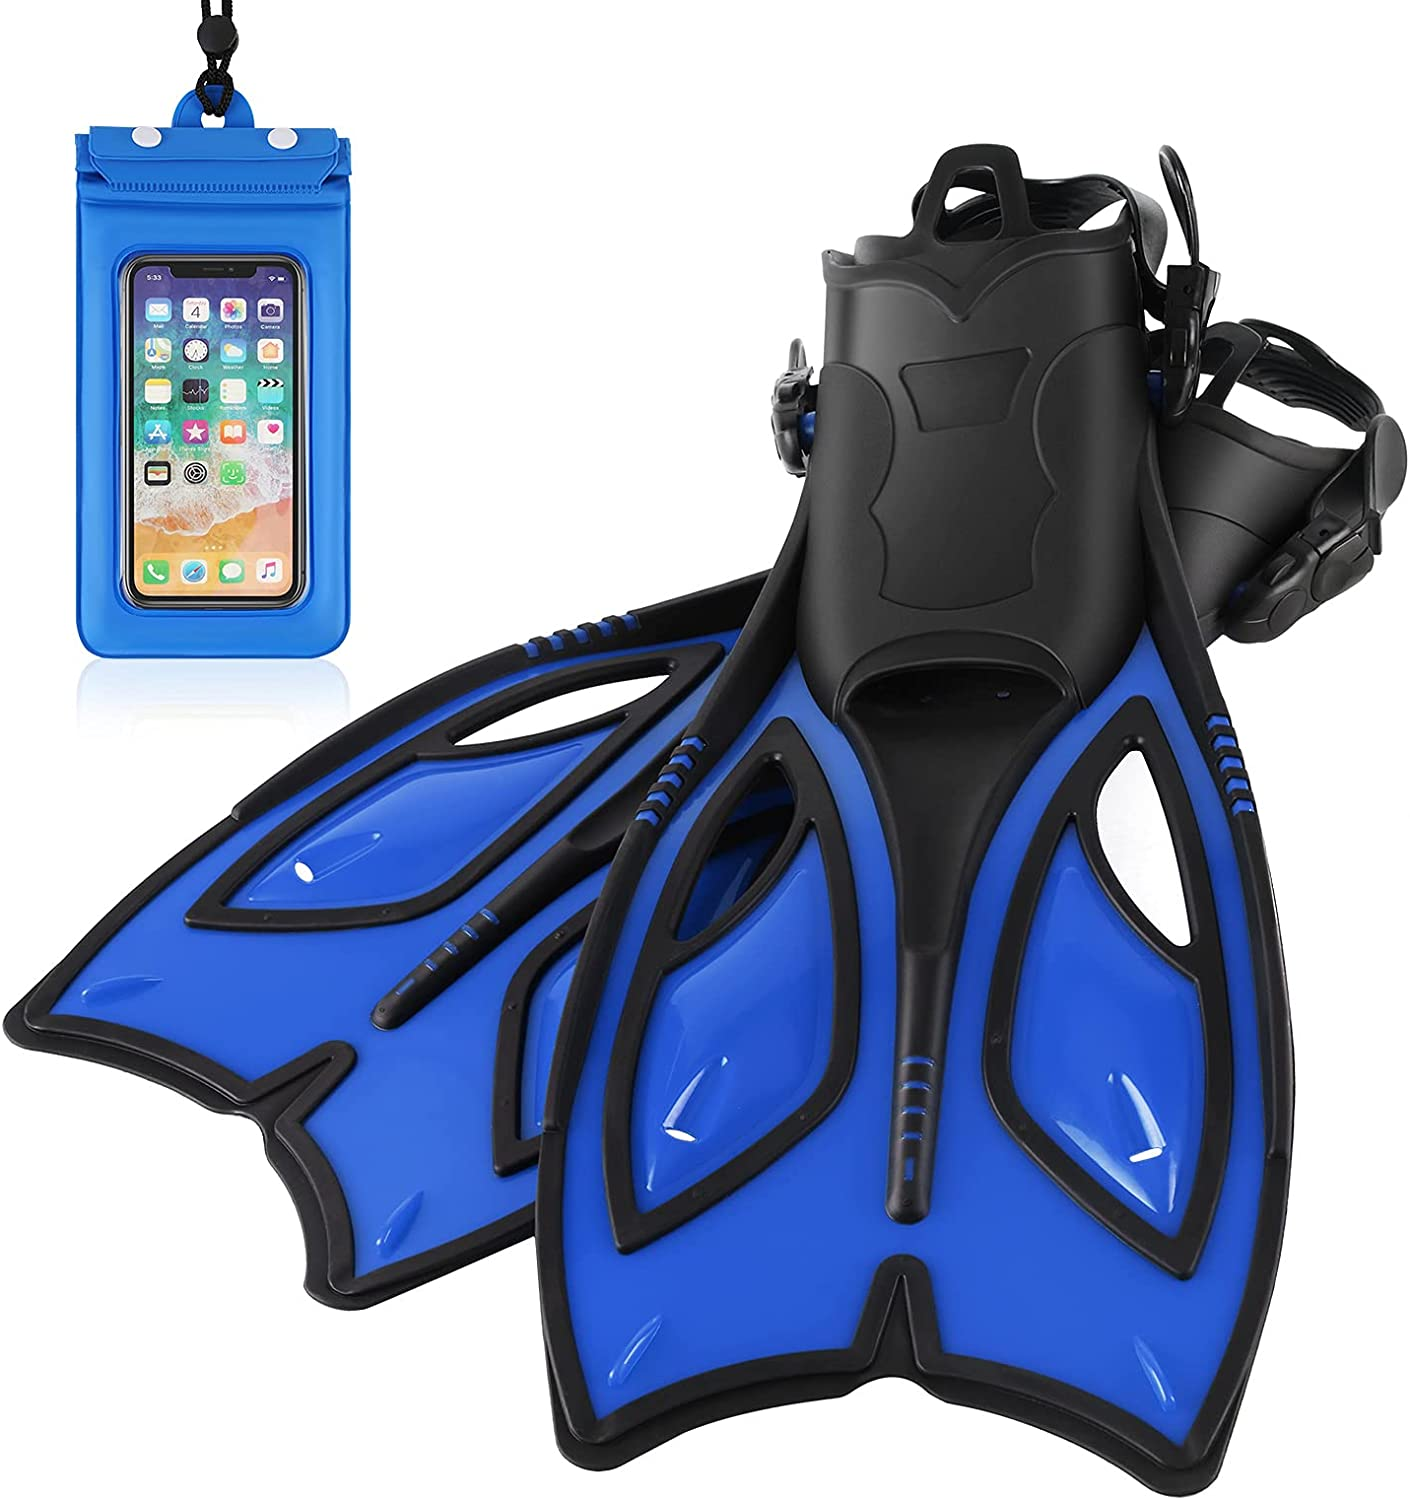 woltics In a popularity 35% OFF Snorkel Fins Diving with Adjustable Scuba Heel Open